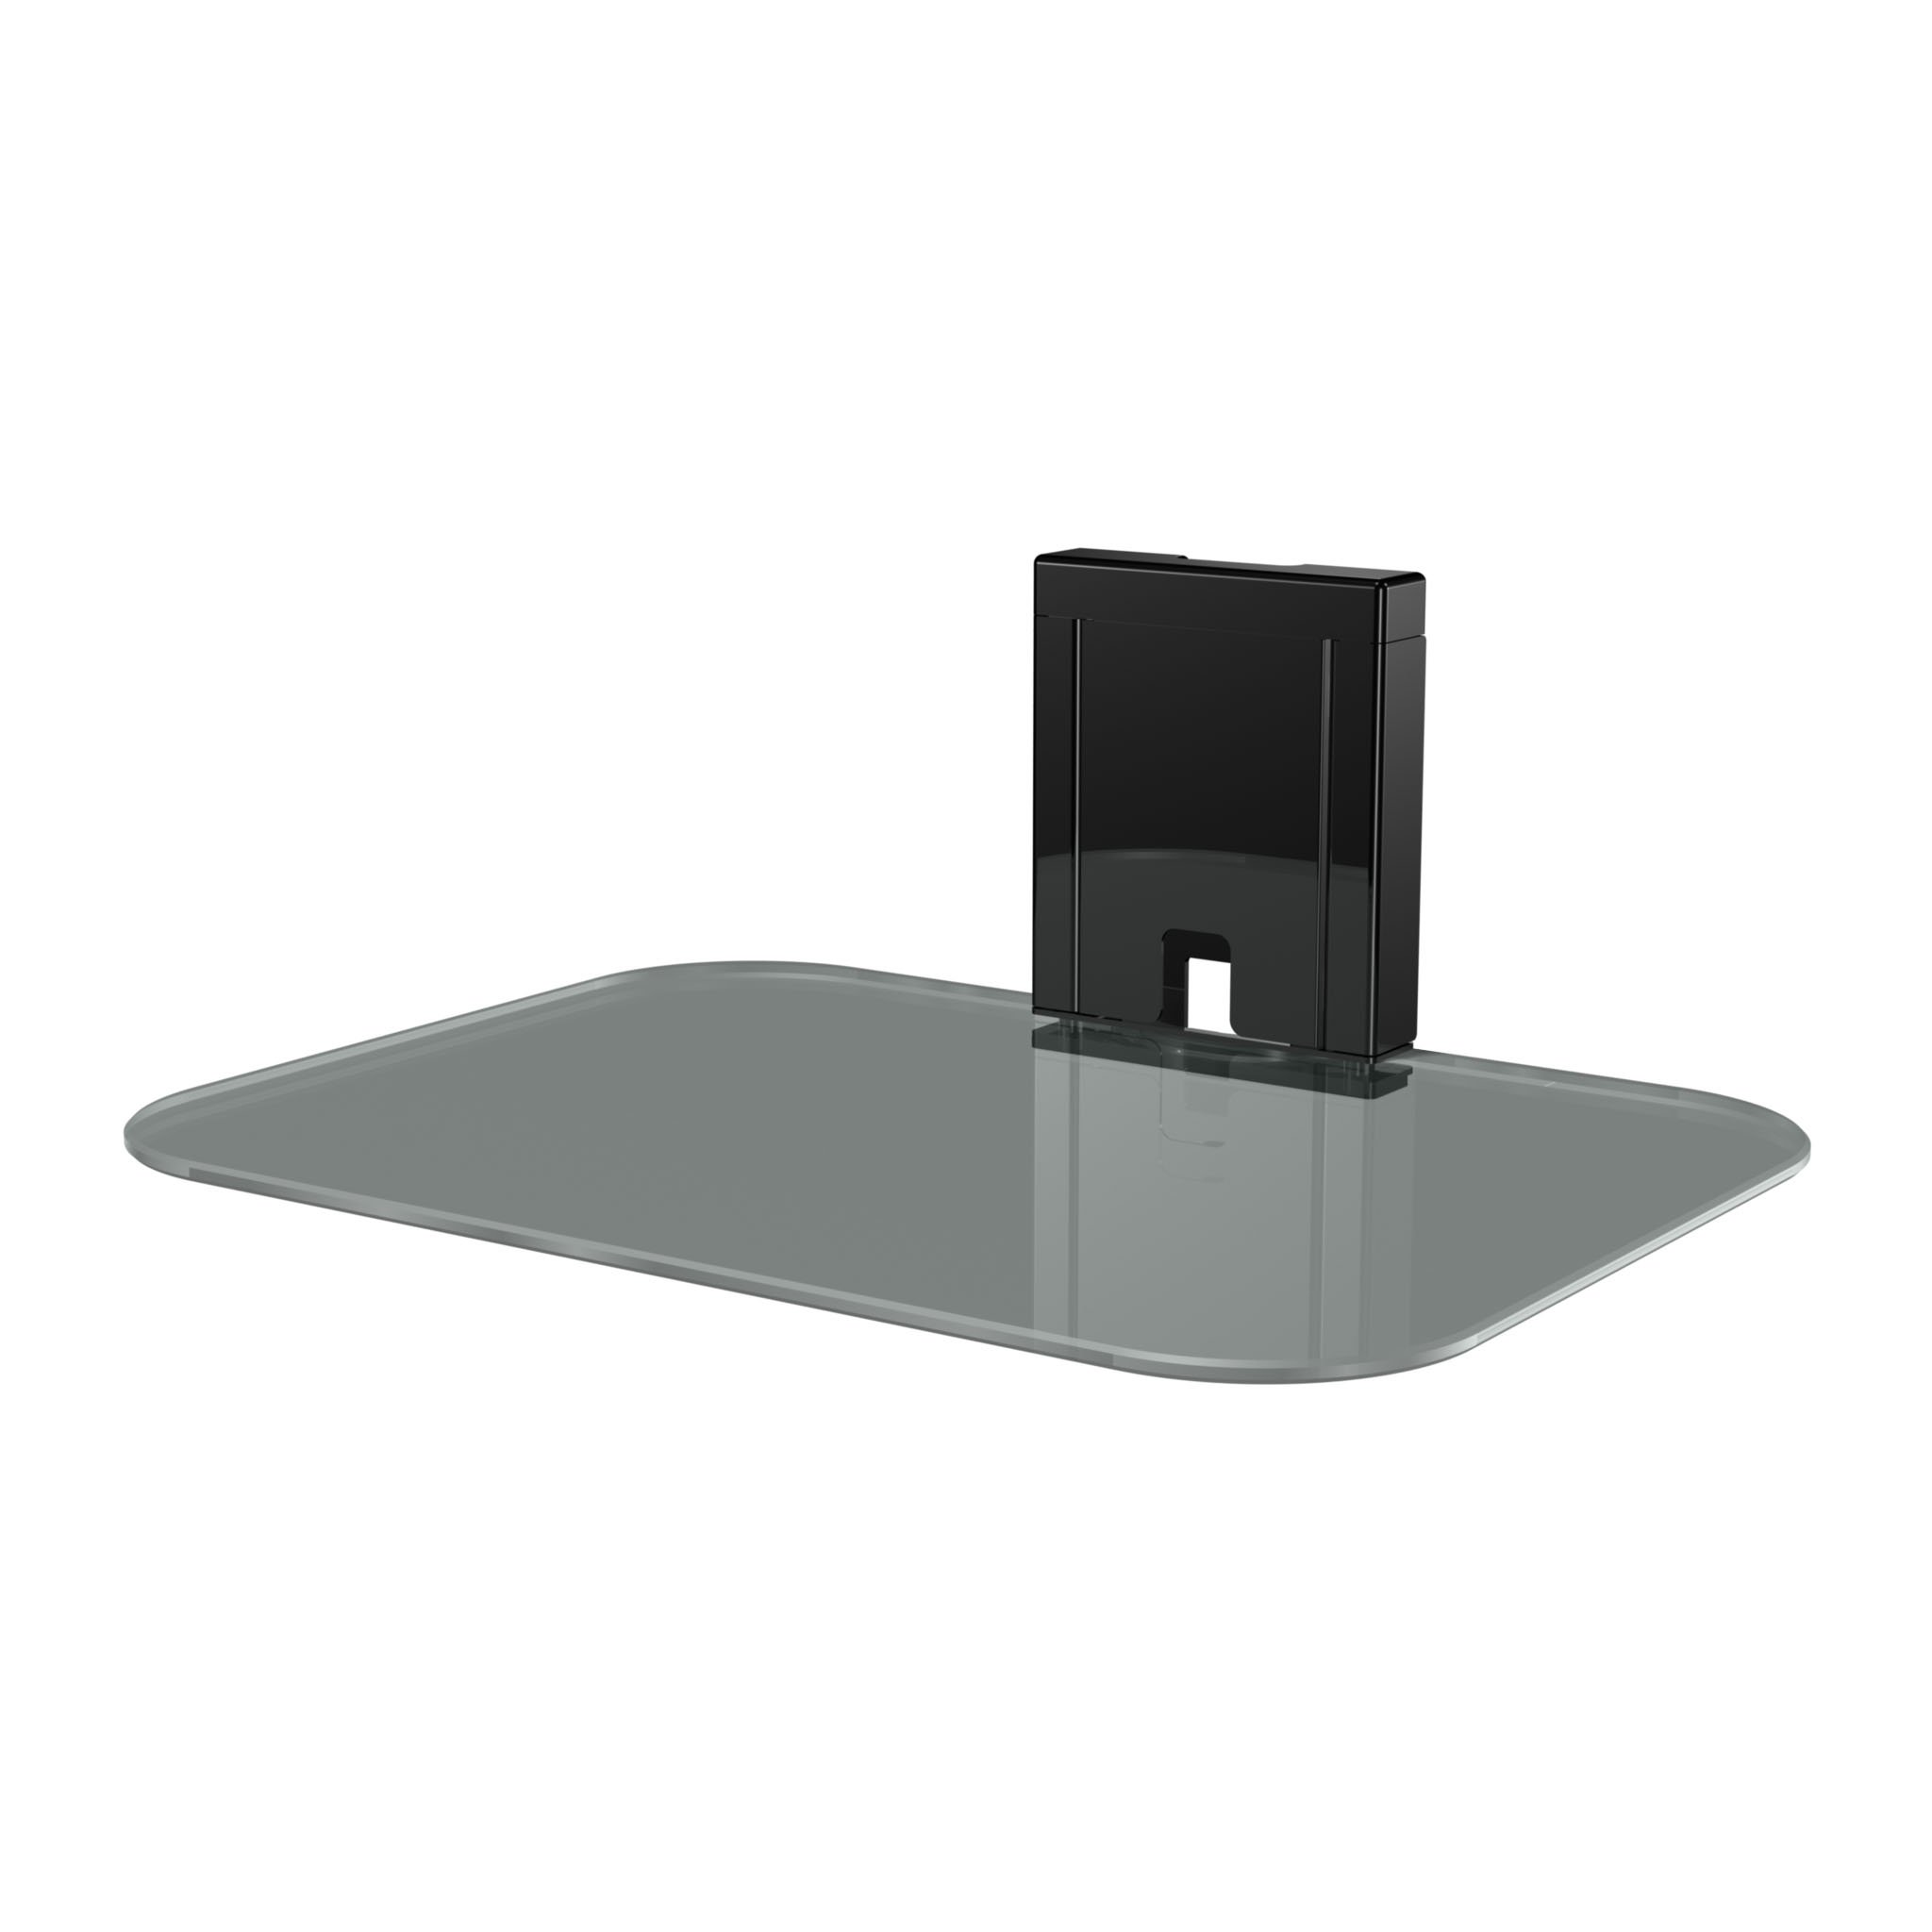 Sanus Tempered Glass On-Wall AV Shelf for Streaming Devices, Game Consoles, and Cable Boxes - SOA-AVS1 by Sanus